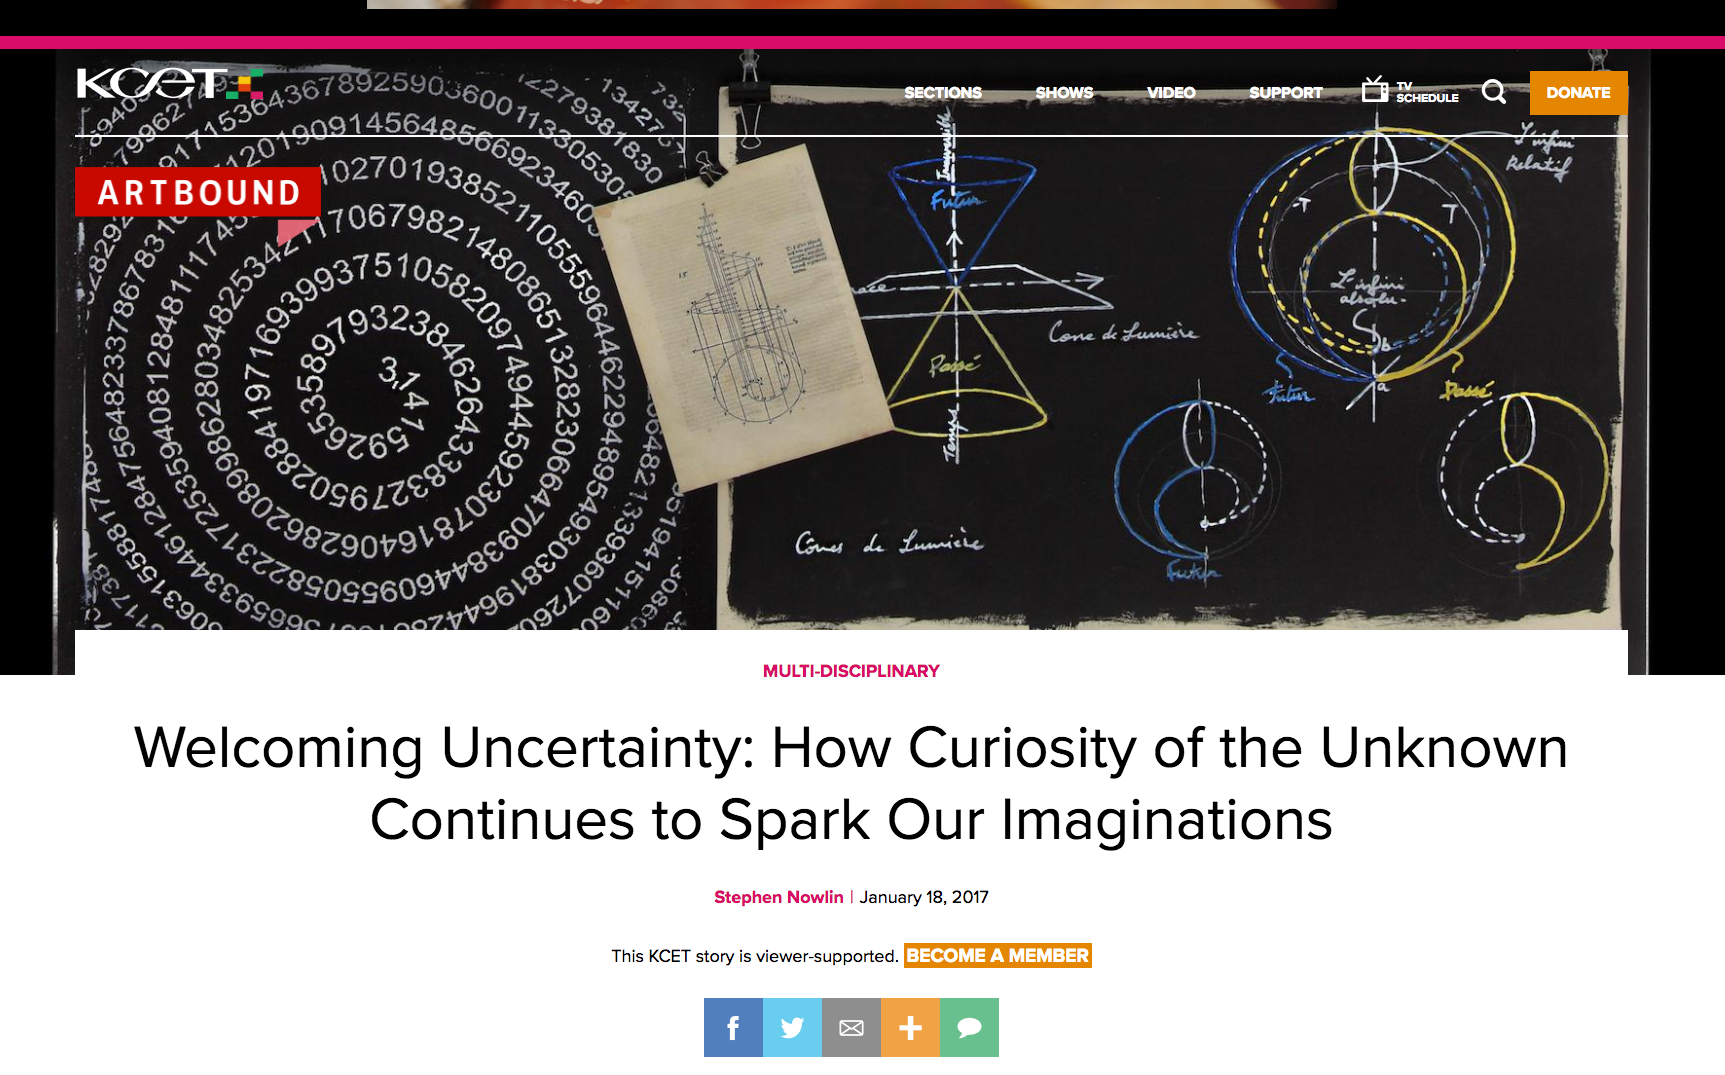 Welcoming Uncertainty: How Curiosity of the Unknown Continues to Spark Our Imaginations